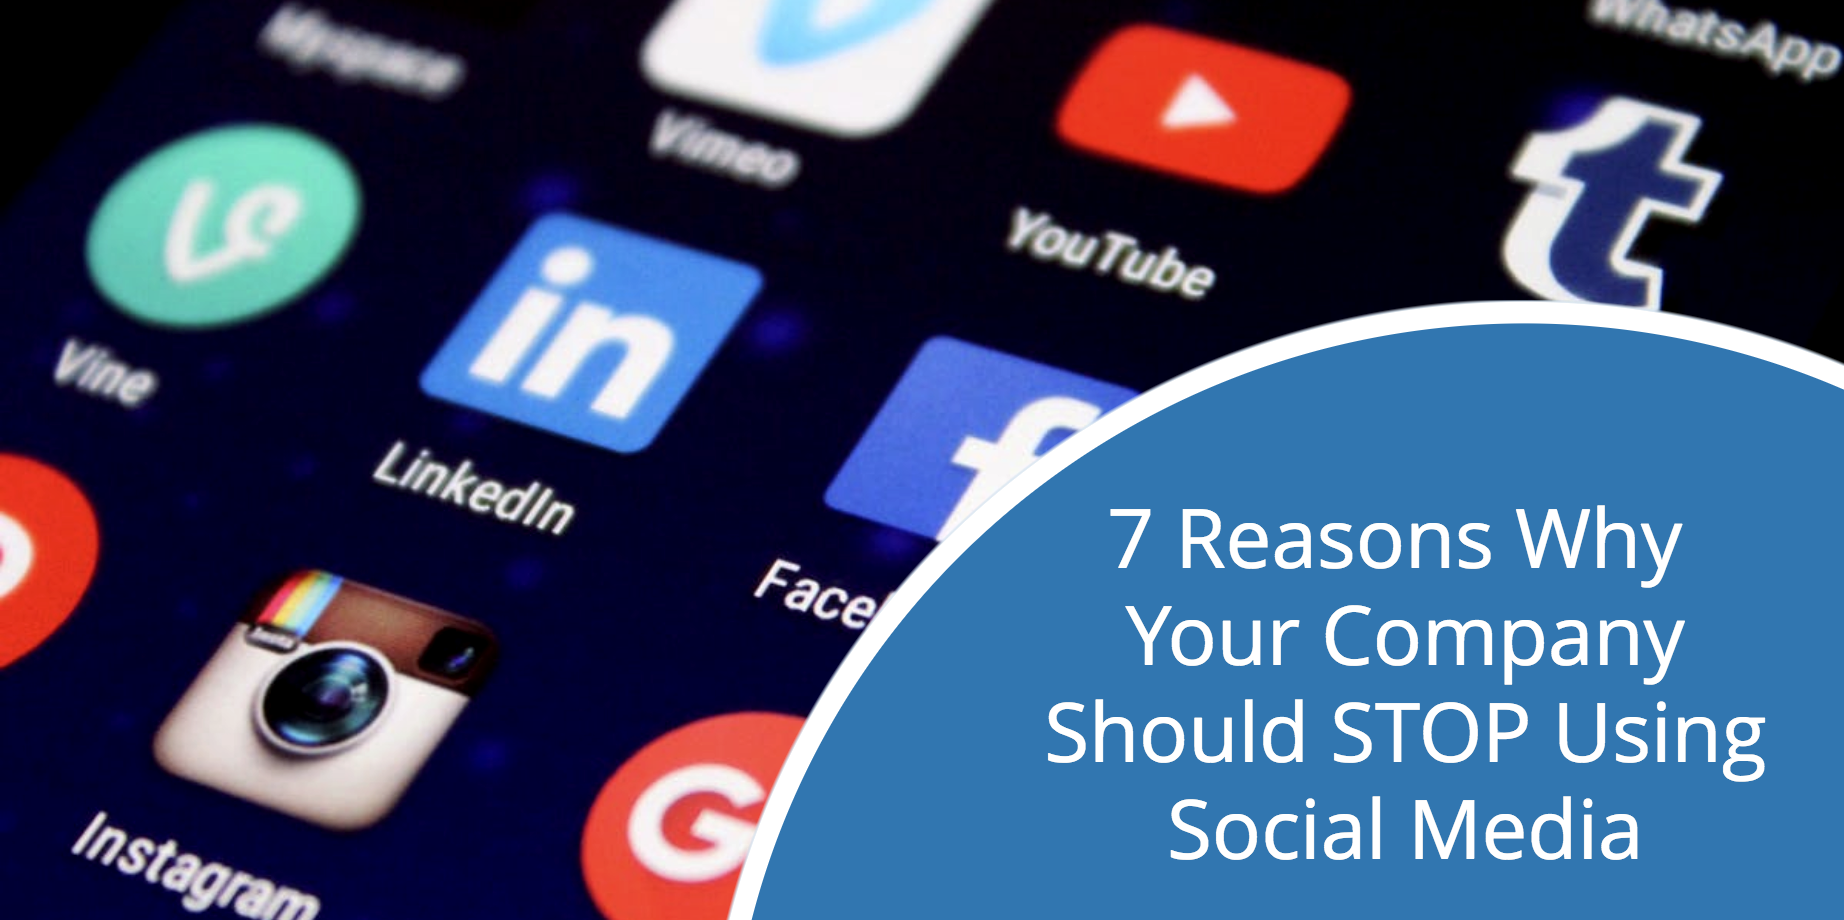 7 Reasons Why Your Company Should STOP Using Social Media Today